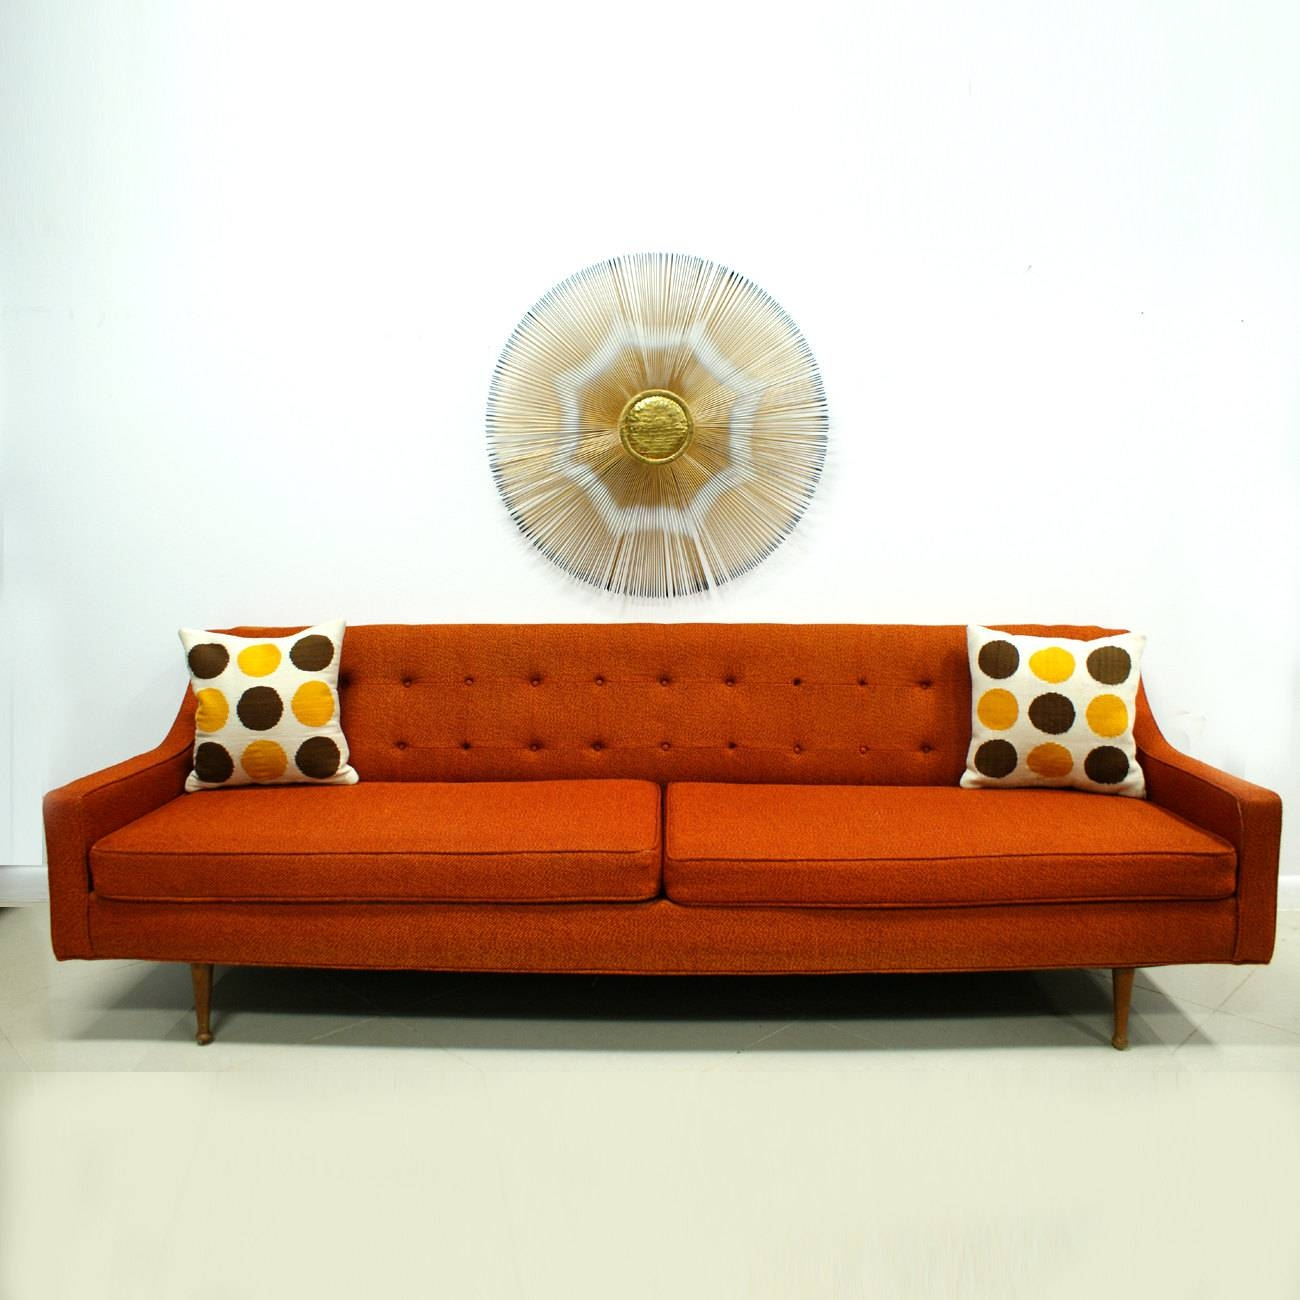 Catchy Orange Sofa Design For Creative Living Room Design - Home intended for Orange Modern Sofas (Image 6 of 15)